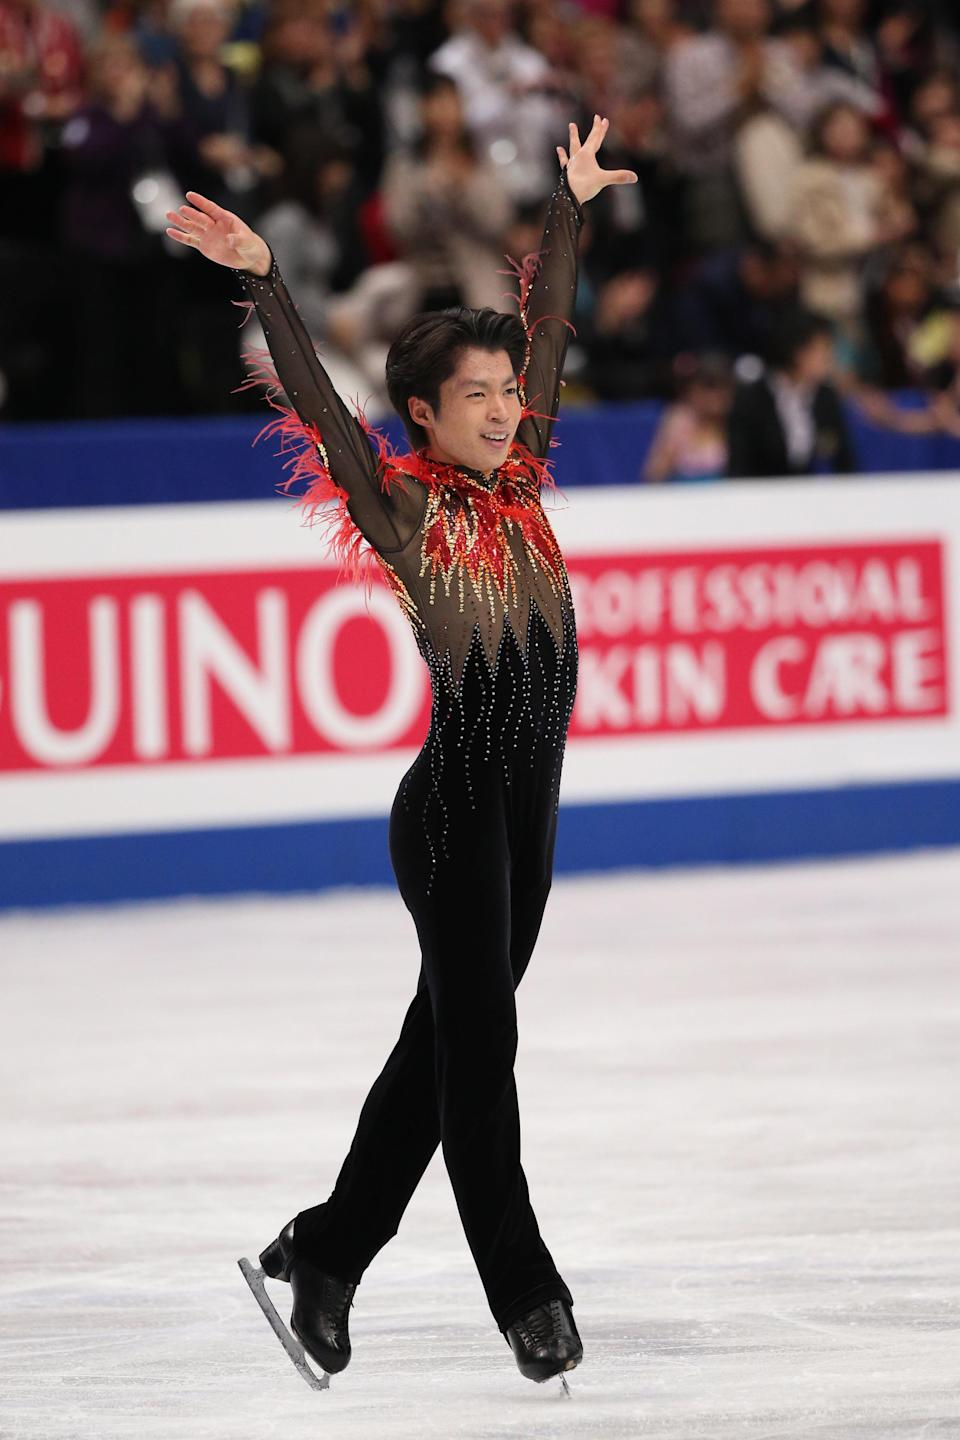 <p>Feathers and sequins and fringes oh my! Tatsuki Machida's outfit at the 2014 World Championships combined all three into one dramatic, and memorable, costume. </p>